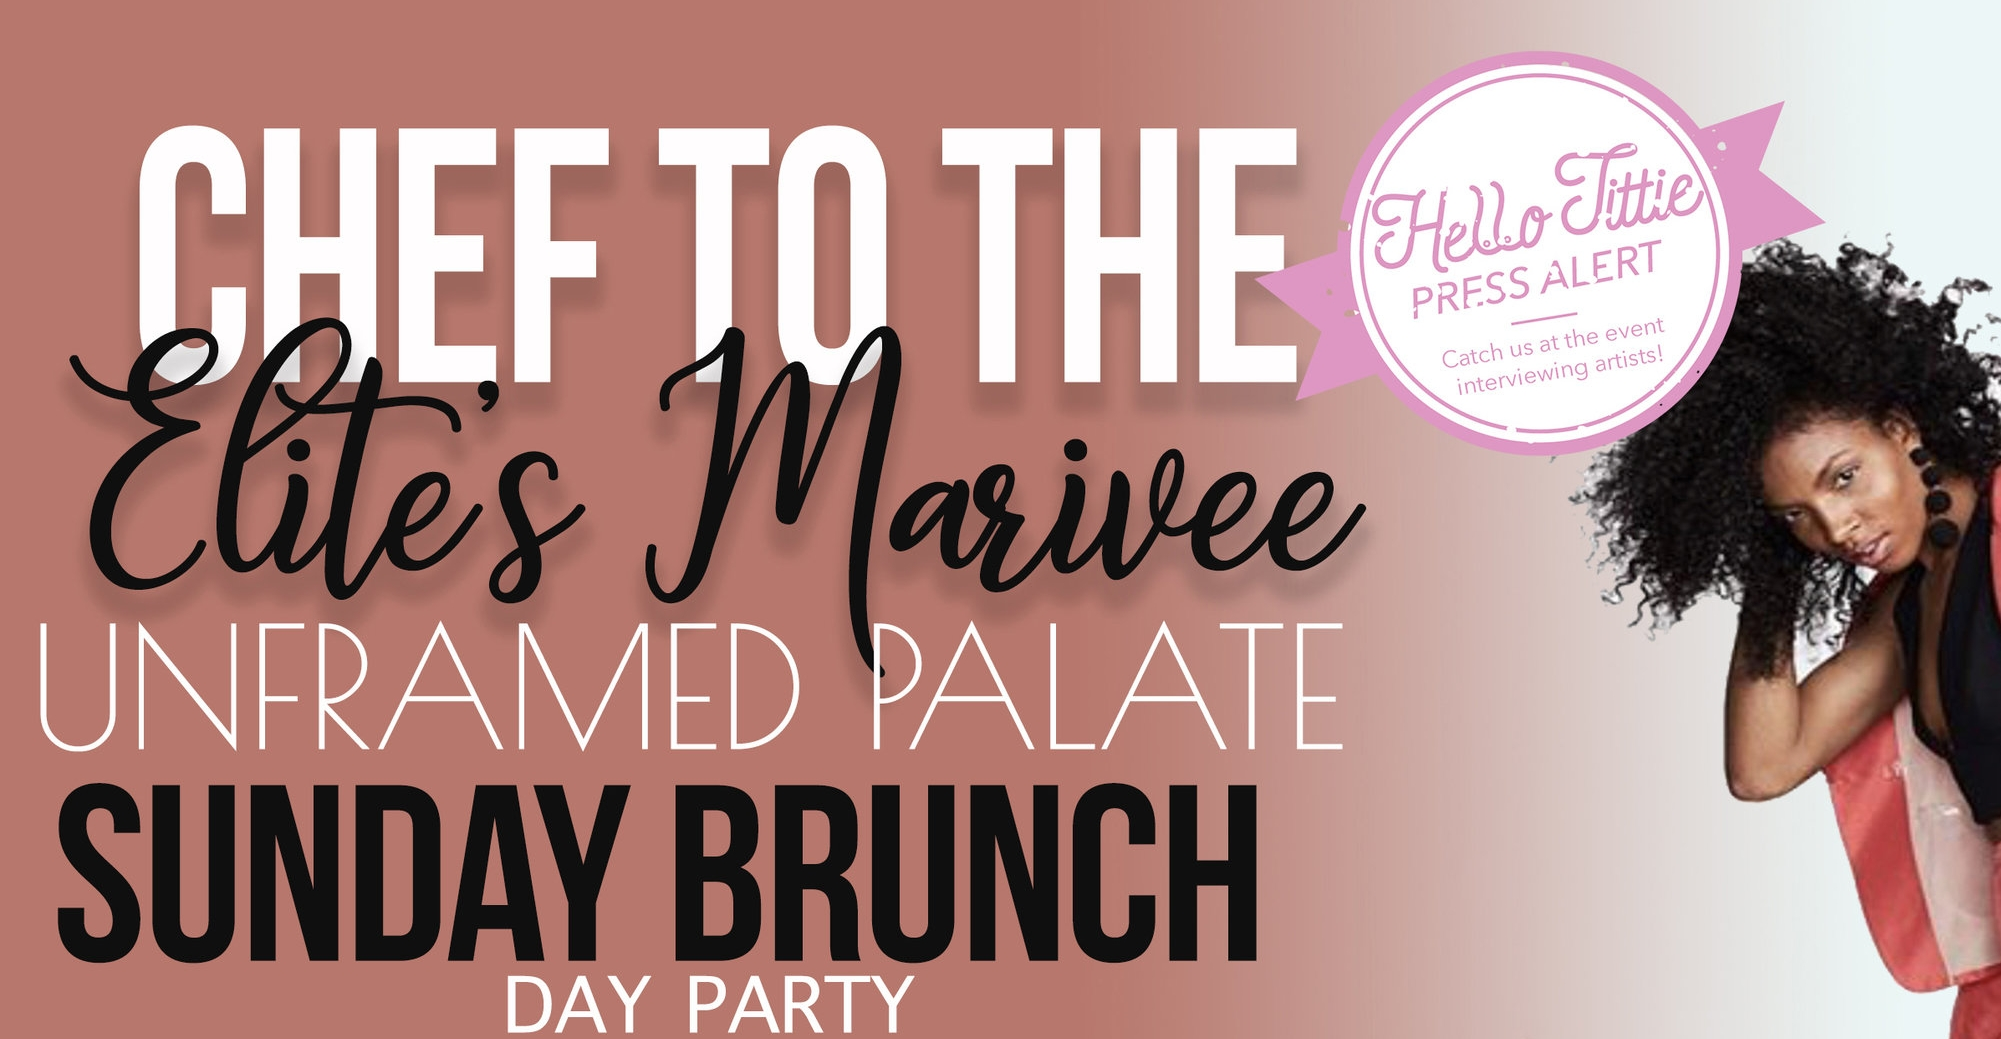 Get to Know Chef Marivee - Hellotittie got a chance to speak with Talib Kweli's personal chef — Chef Marivee at her brunch party earlier this month! Read about her passion for cooking, along with some tips on how to eat clean.